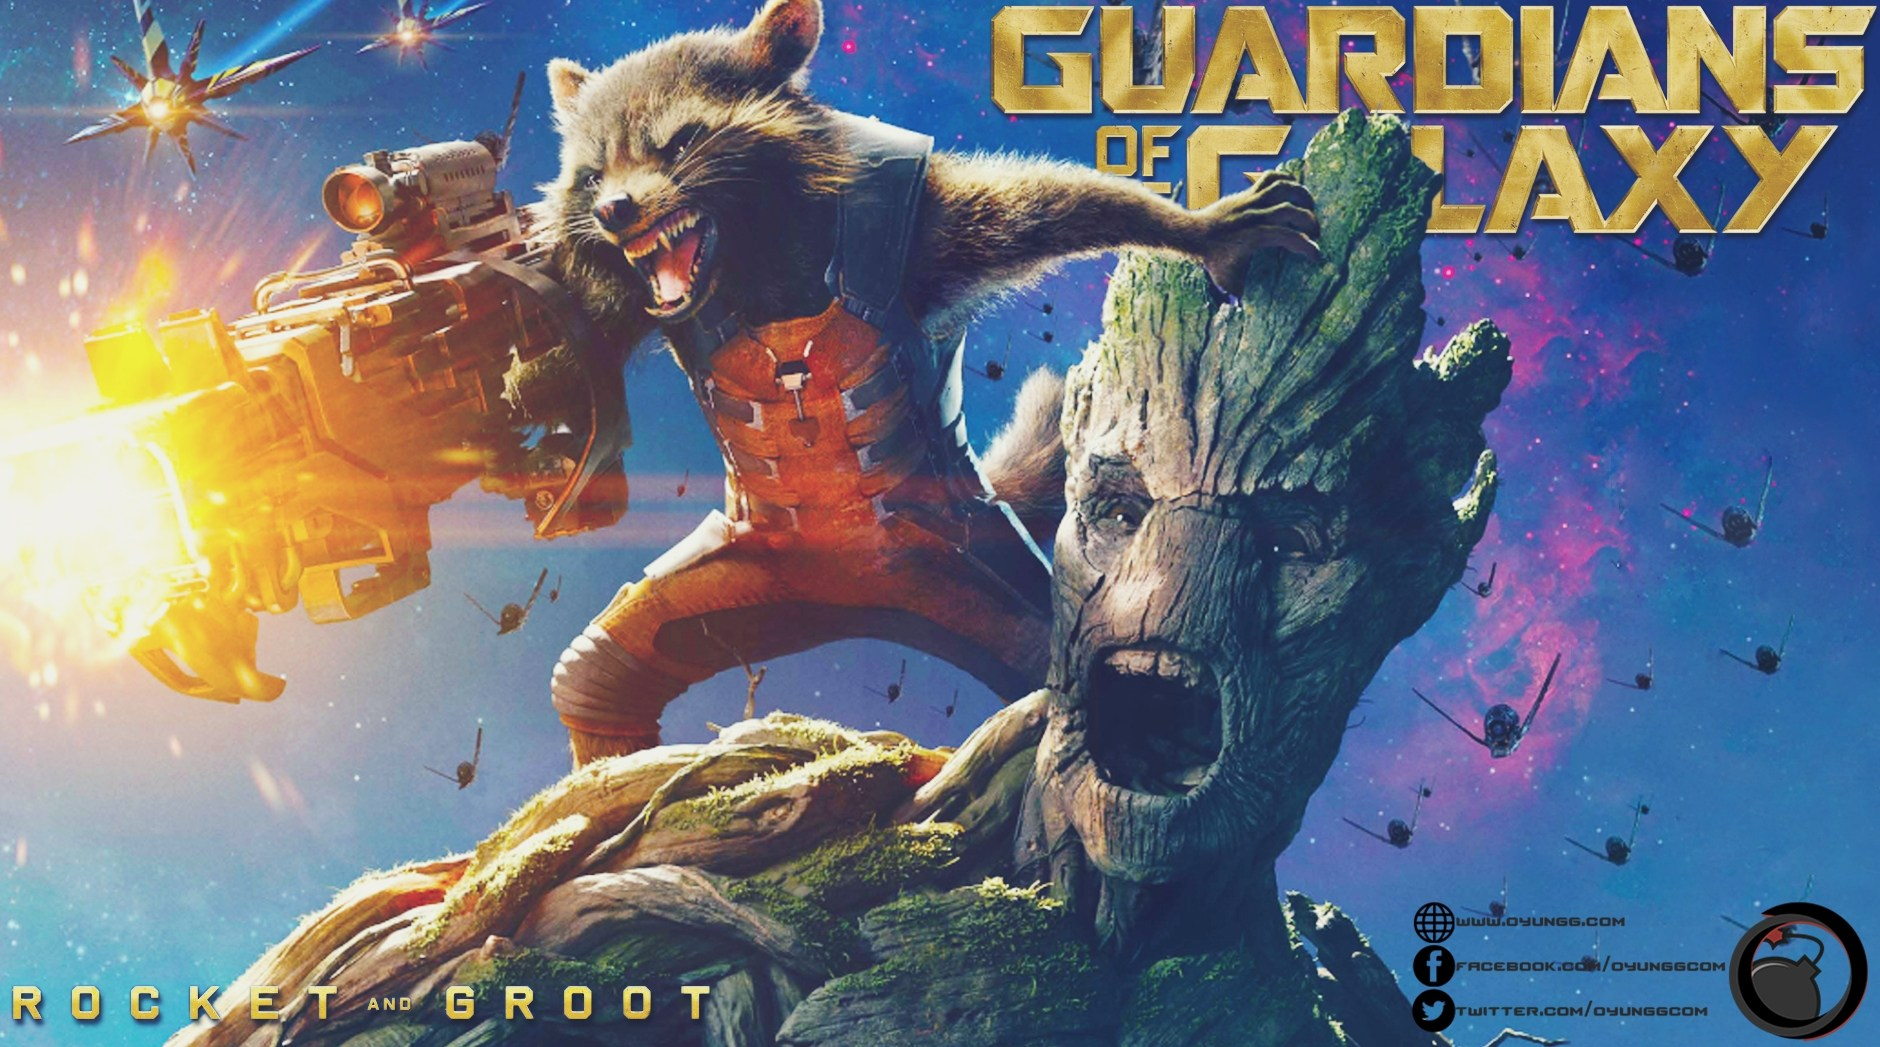 Guardians of The Galaxy Oyun Oluyor